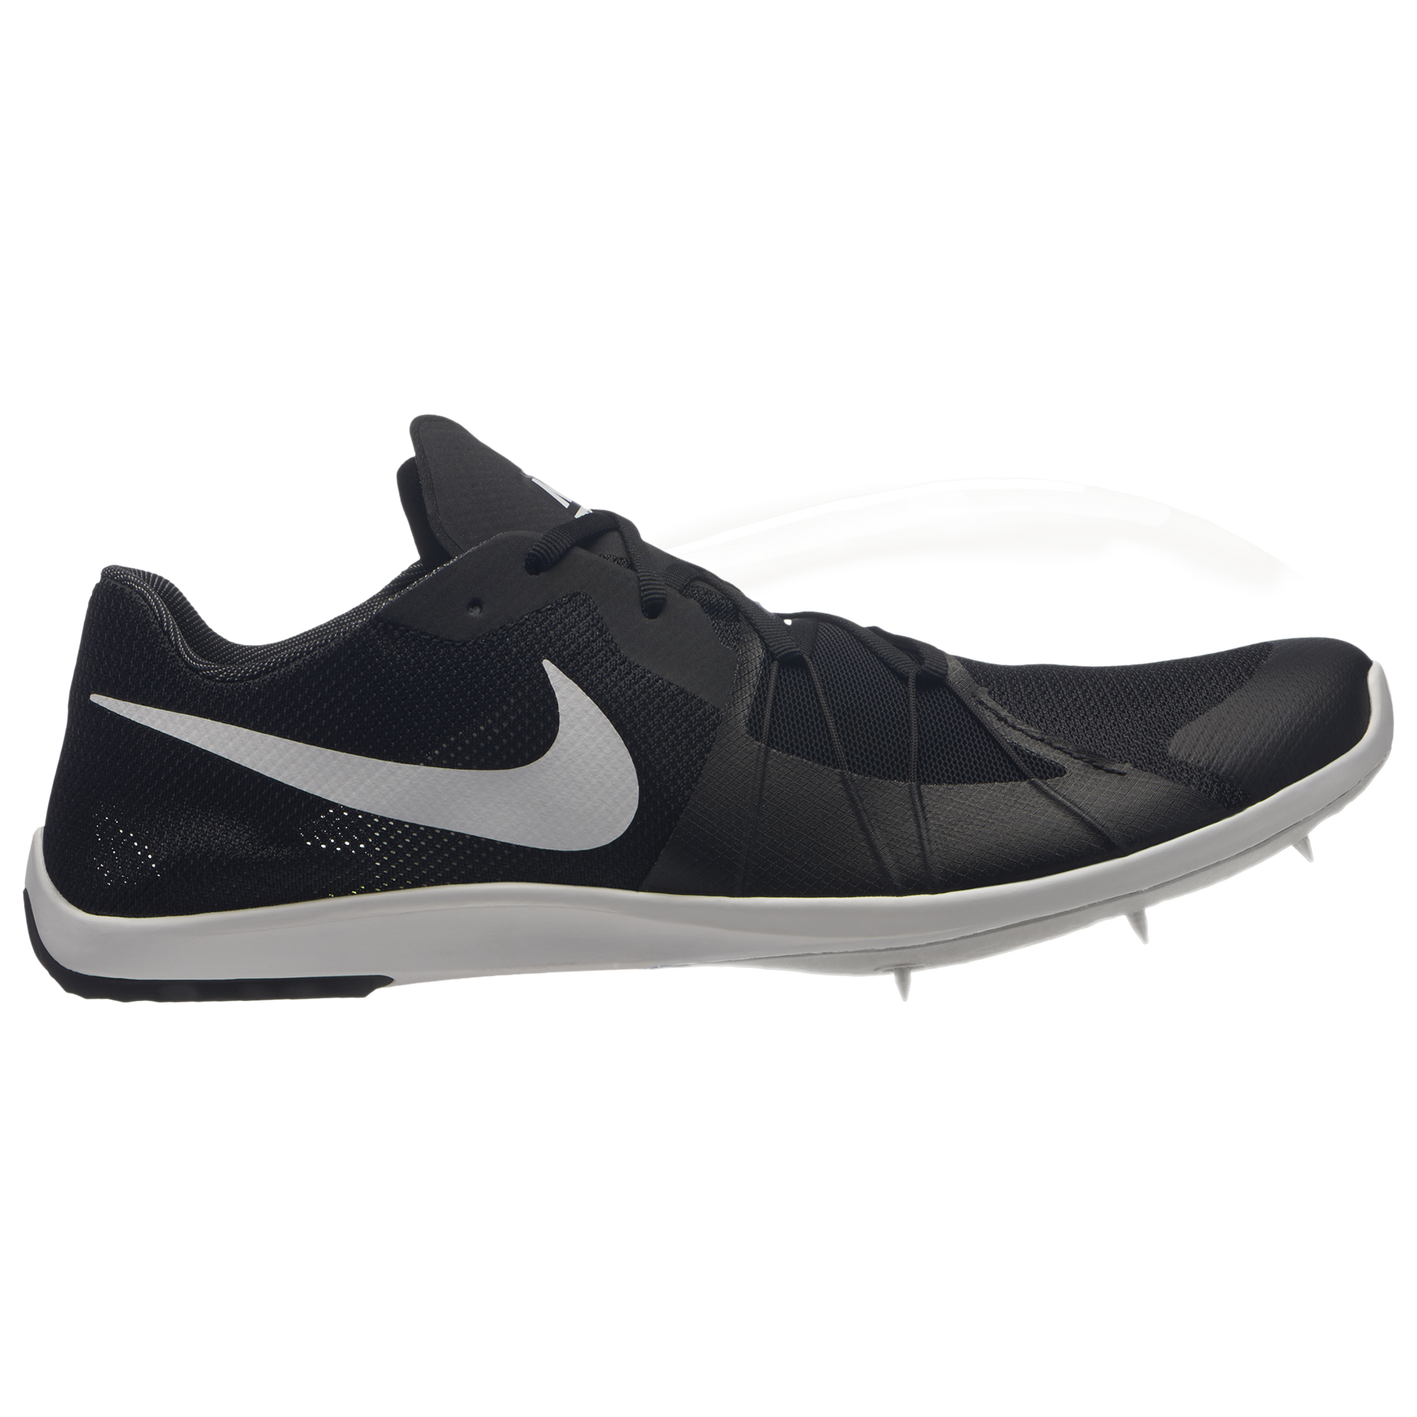 79b8d49a2480 Nike Zoom Forever XC 5 - Men s.  44.99 -  90.00. Product    04723001.  Selected Style  Black Summit White Oil Grey ...